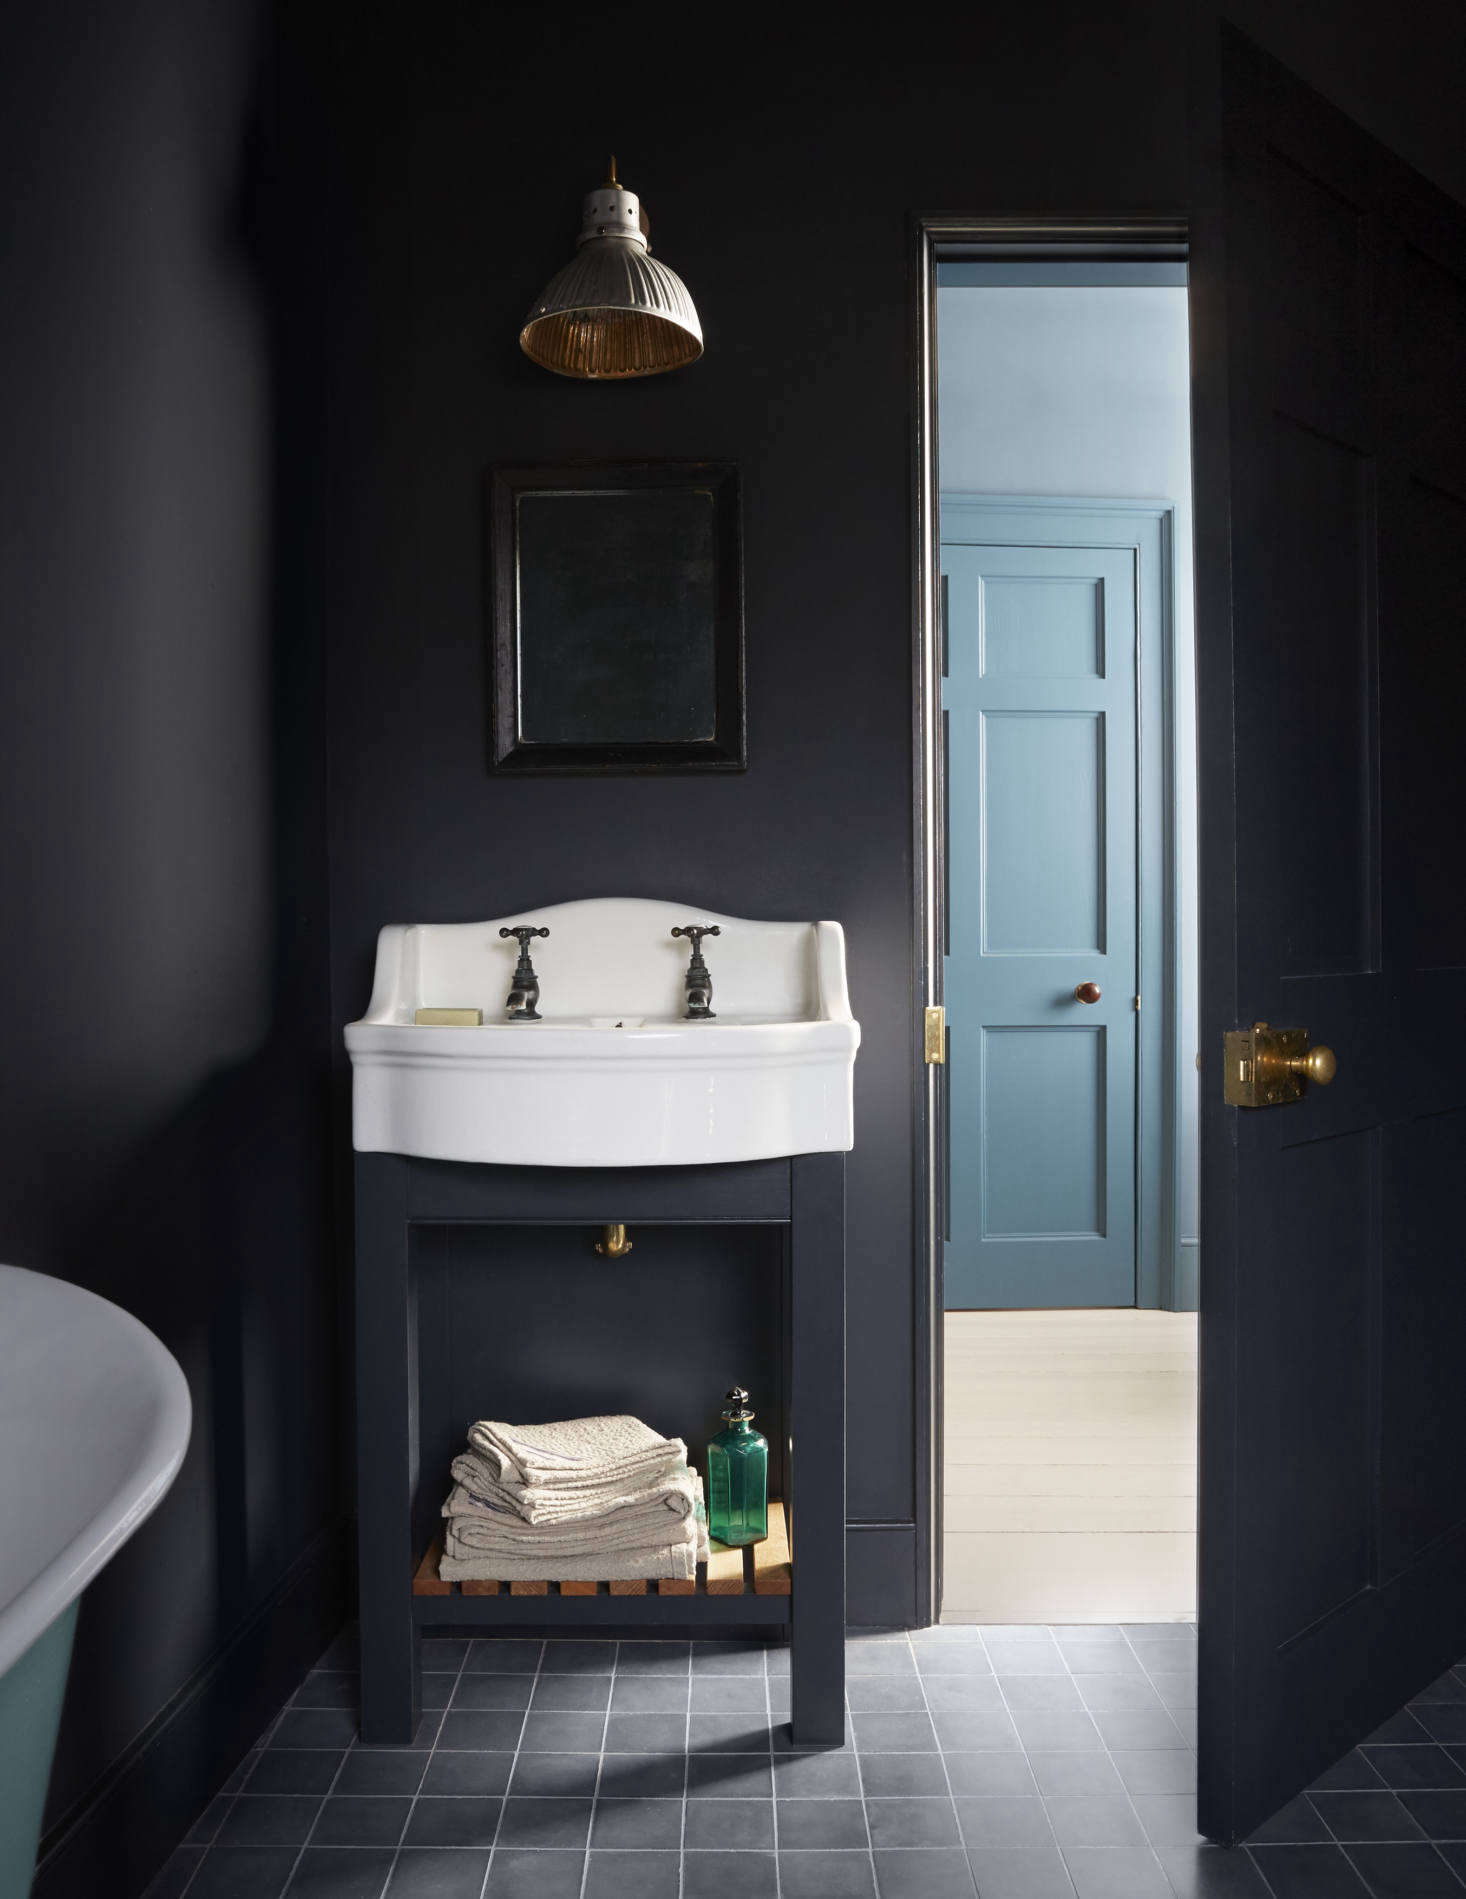 """Harding assembled the guest bath's sink, taps, bathtub, and mercury glass light from """"various antiques shops and salvage yards."""" She painted the room Farrow & Ball Railings and the tub turquoise."""